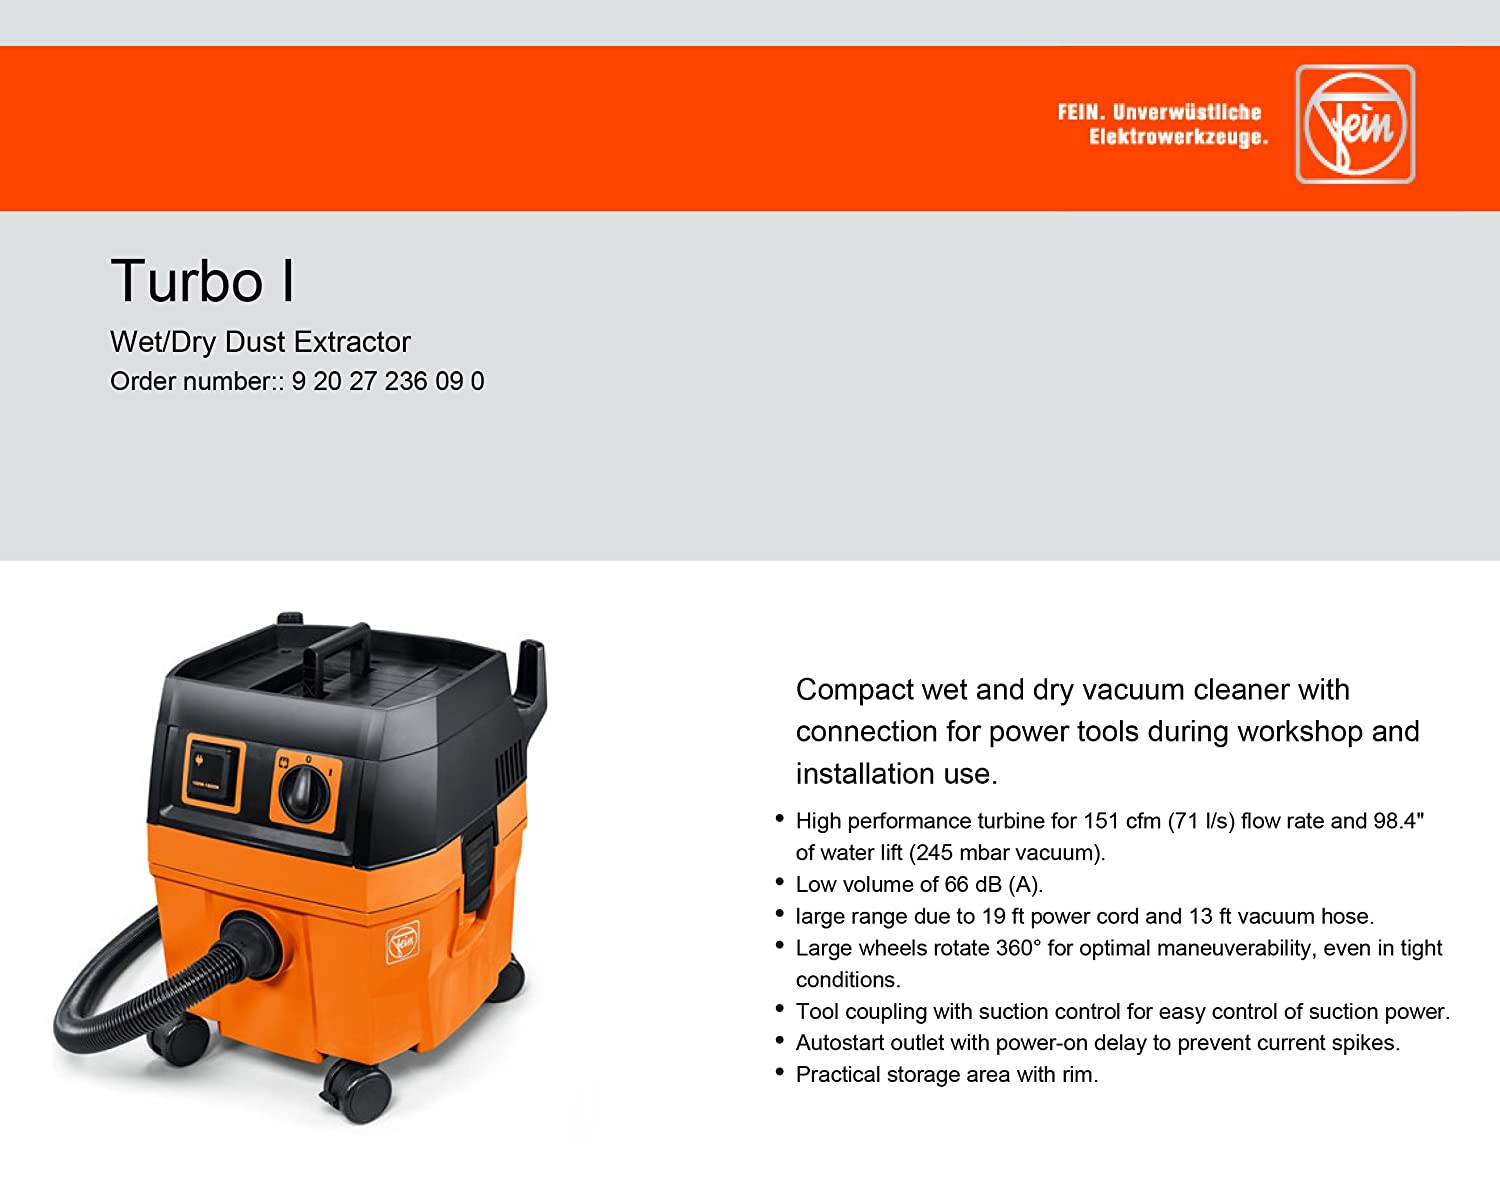 FEIN Turbo I Vacuum Cleaner, 5 8 Gallon, 1100W   Includes: 13 ft Suction  Hose, Tool Coupling with Suction Power Control, Cellulose Filter, 1 Fleece